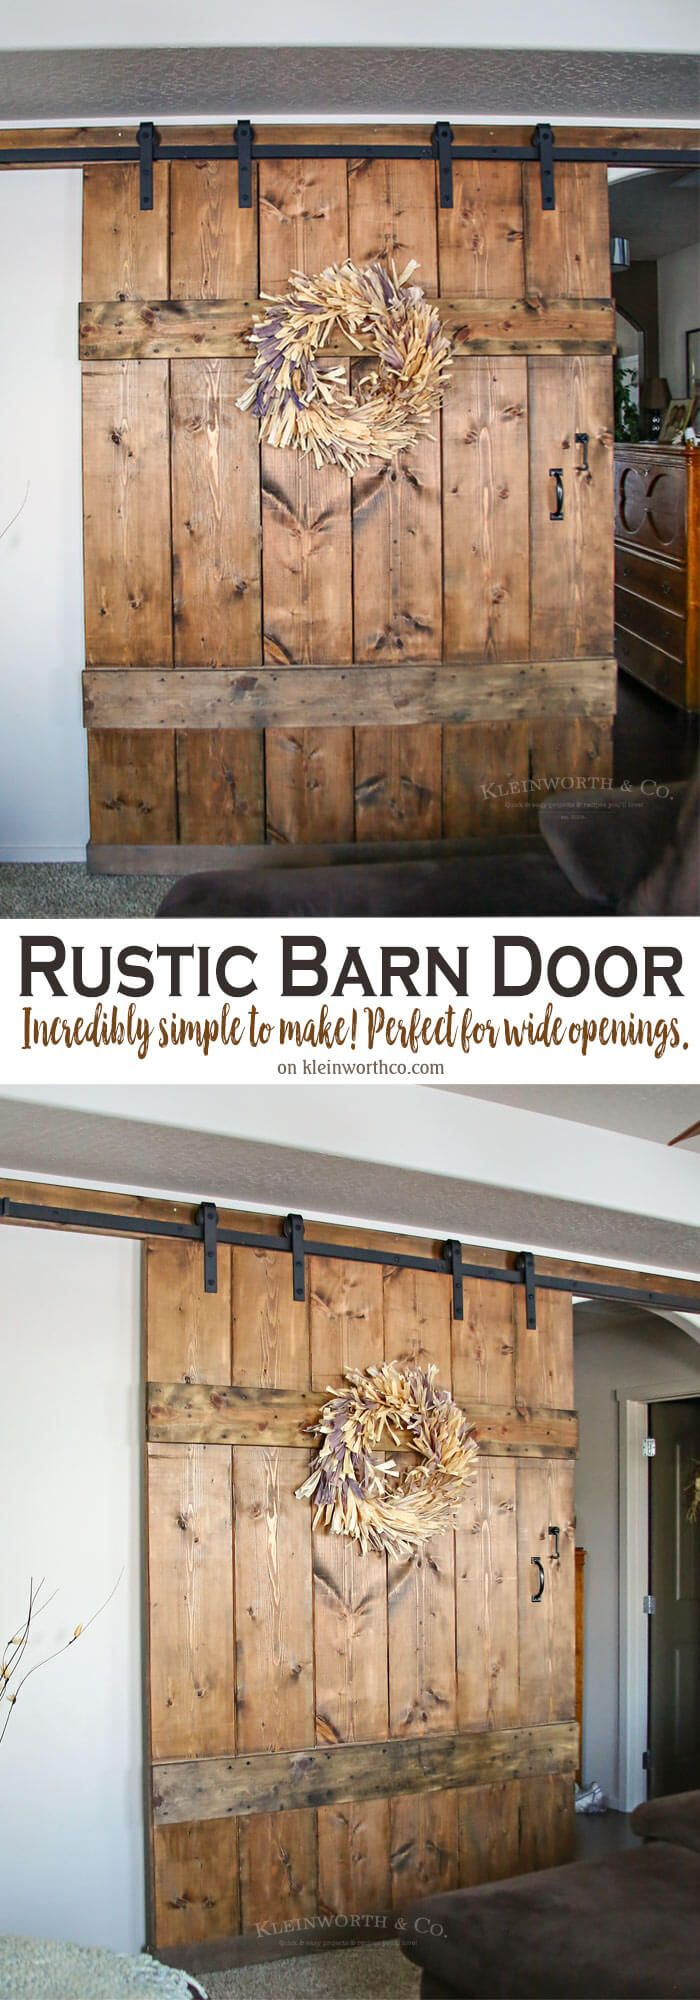 Wide Rustic Barn Door Is 6 Feet Wide Made For Extra Large Doorways It S Simple To Make Adds Functionality Ru Rustic Barn Door Diy Barn Door Rustic House